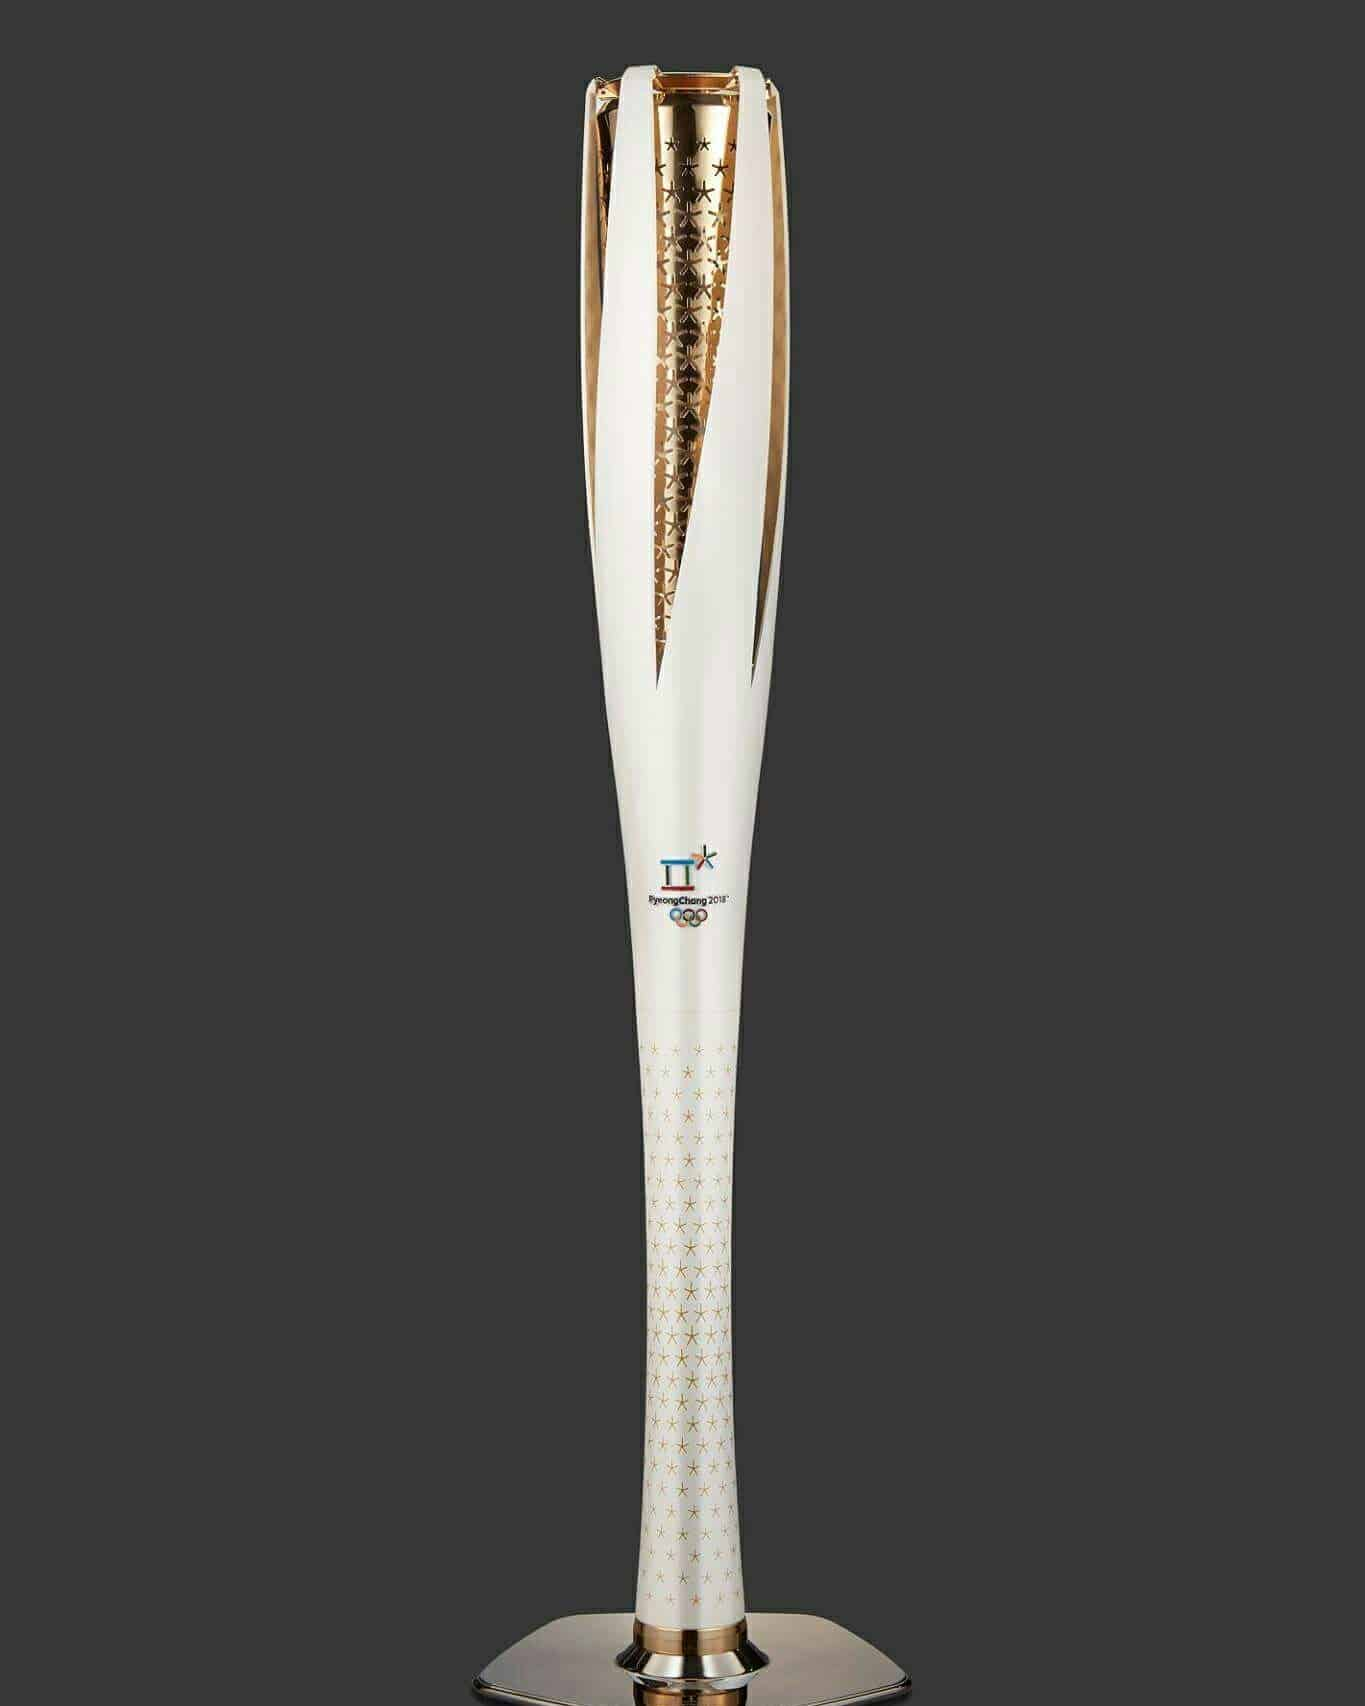 2018 Winter Olympics torch